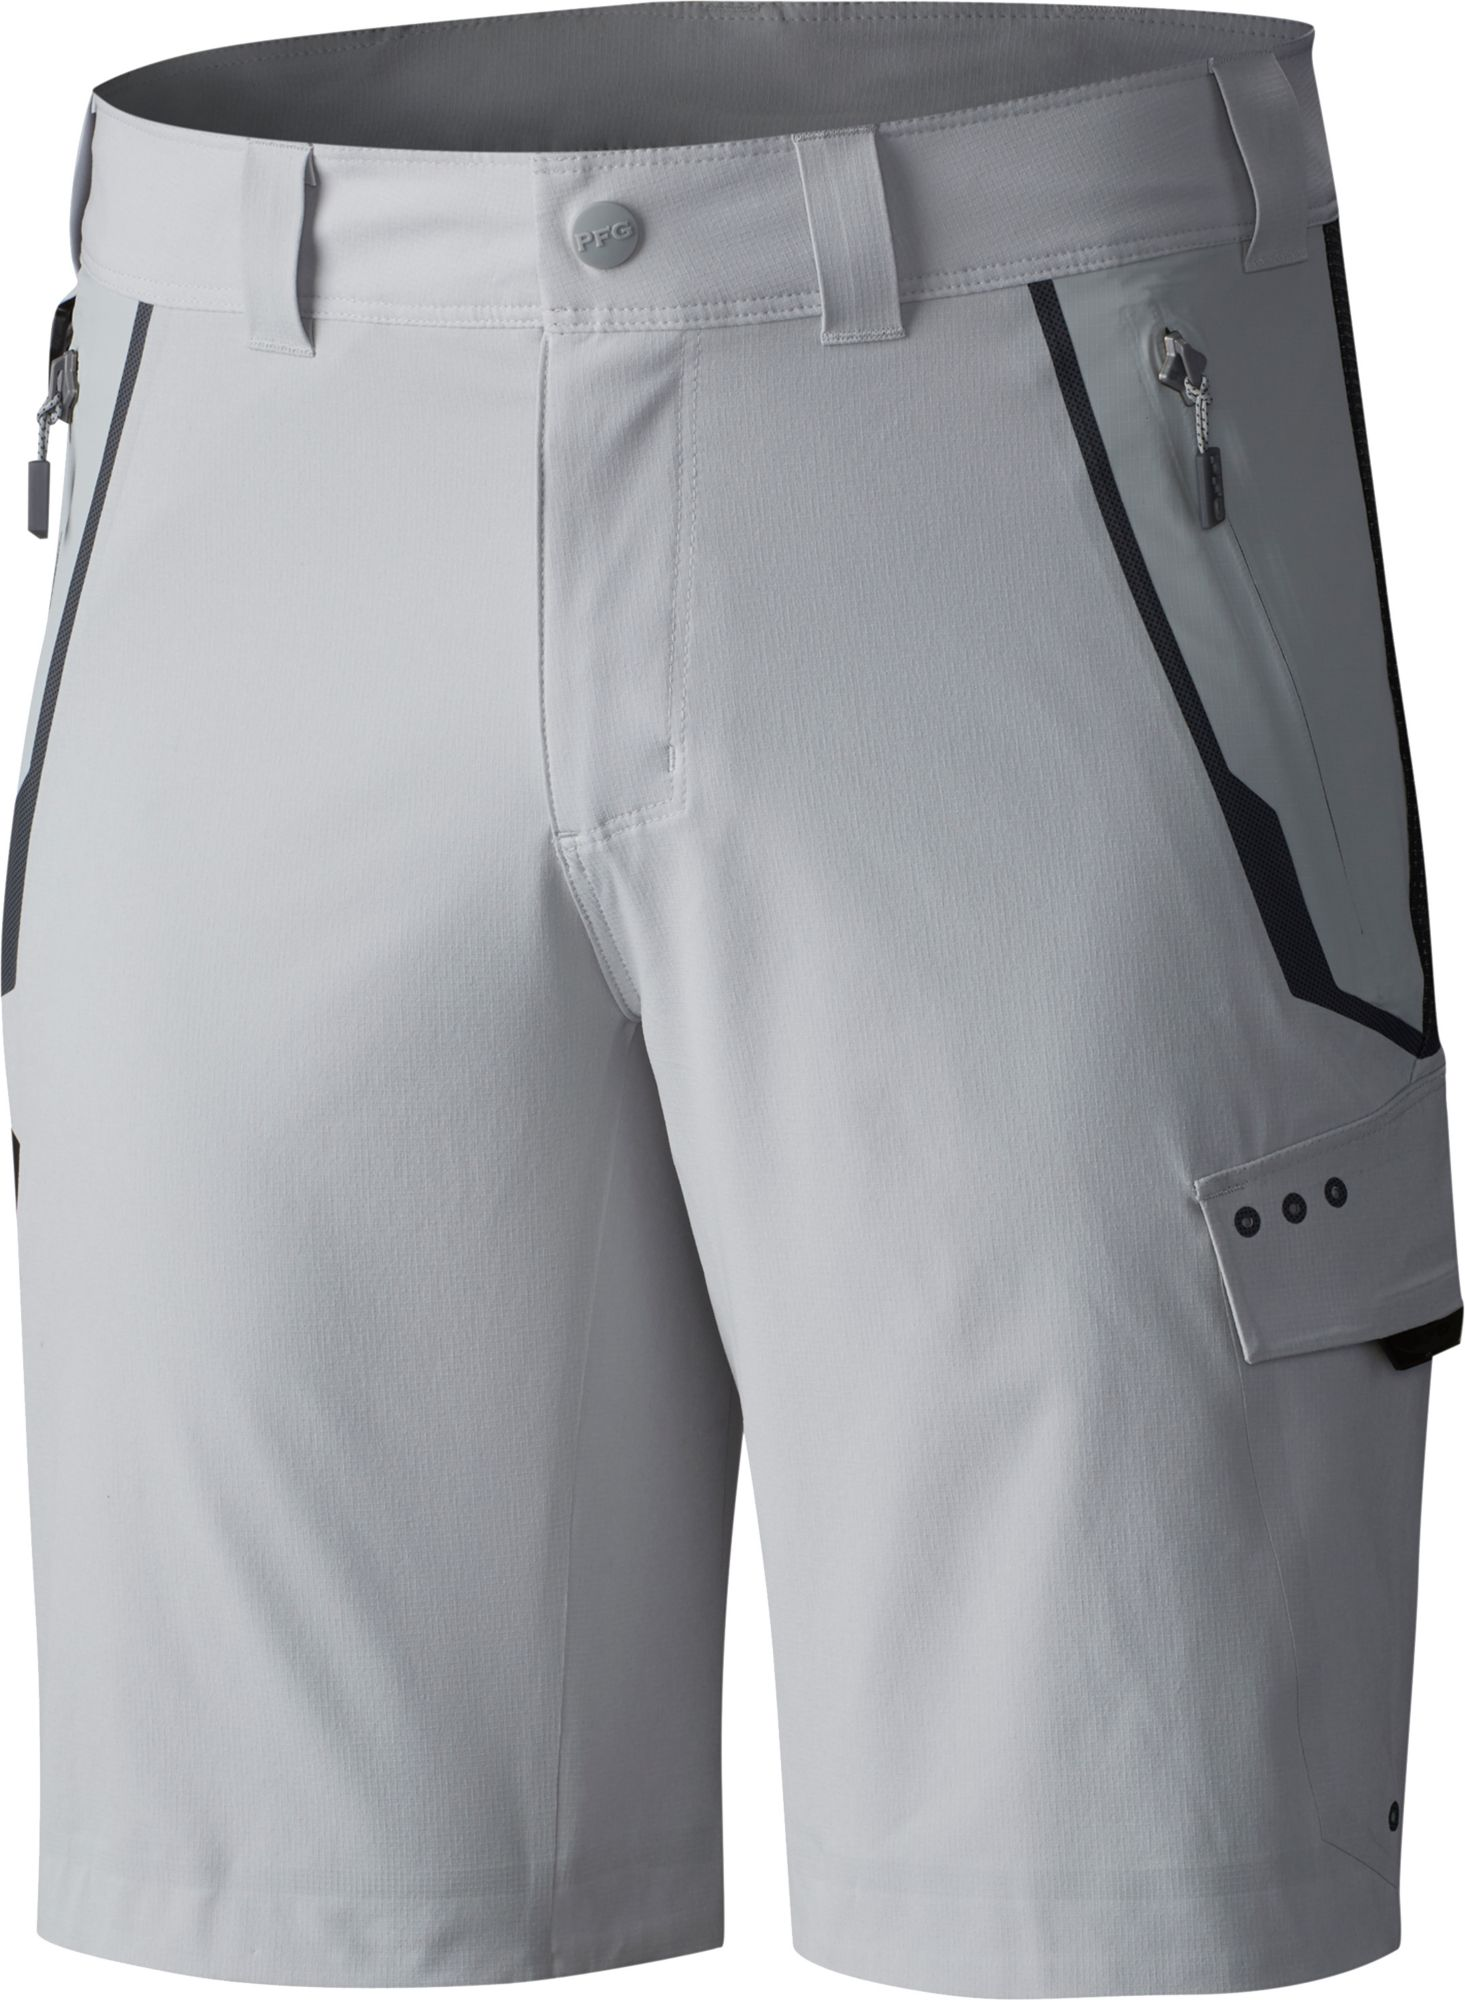 Columbia Men's Force 12 Shorts | DICK'S Sporting Goods